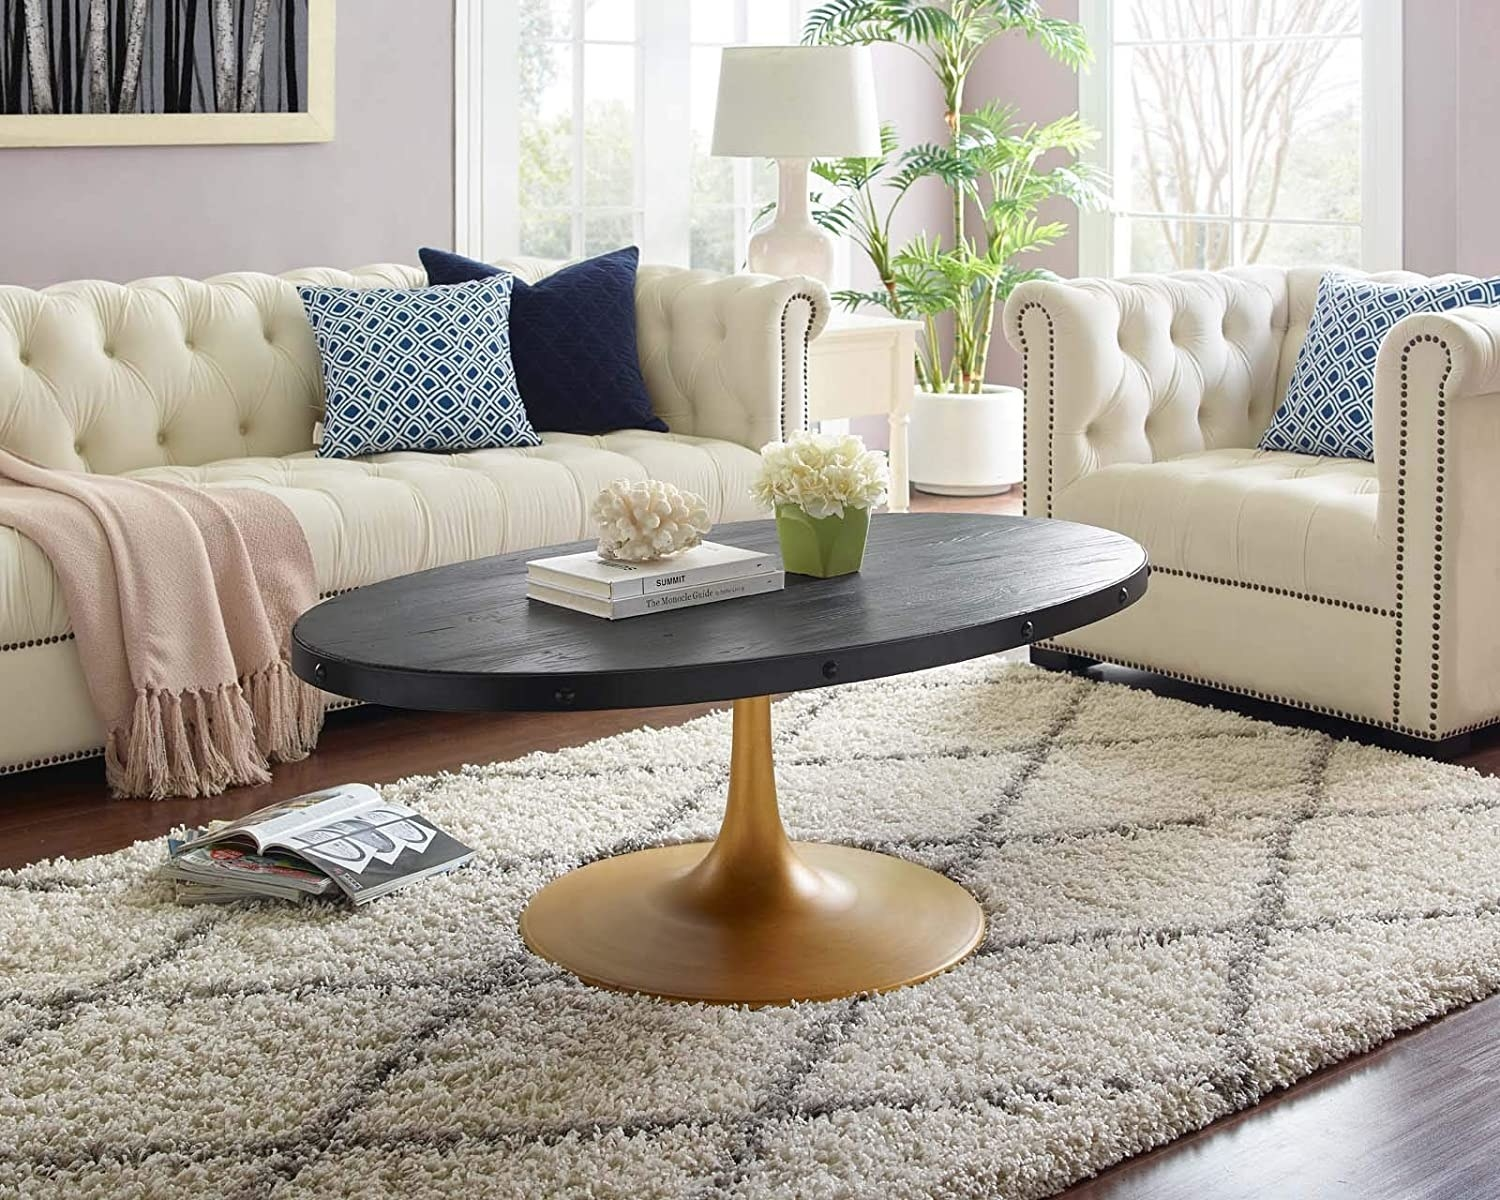 Oval black wood-top coffee table with gold iron pedestal base in a living room.